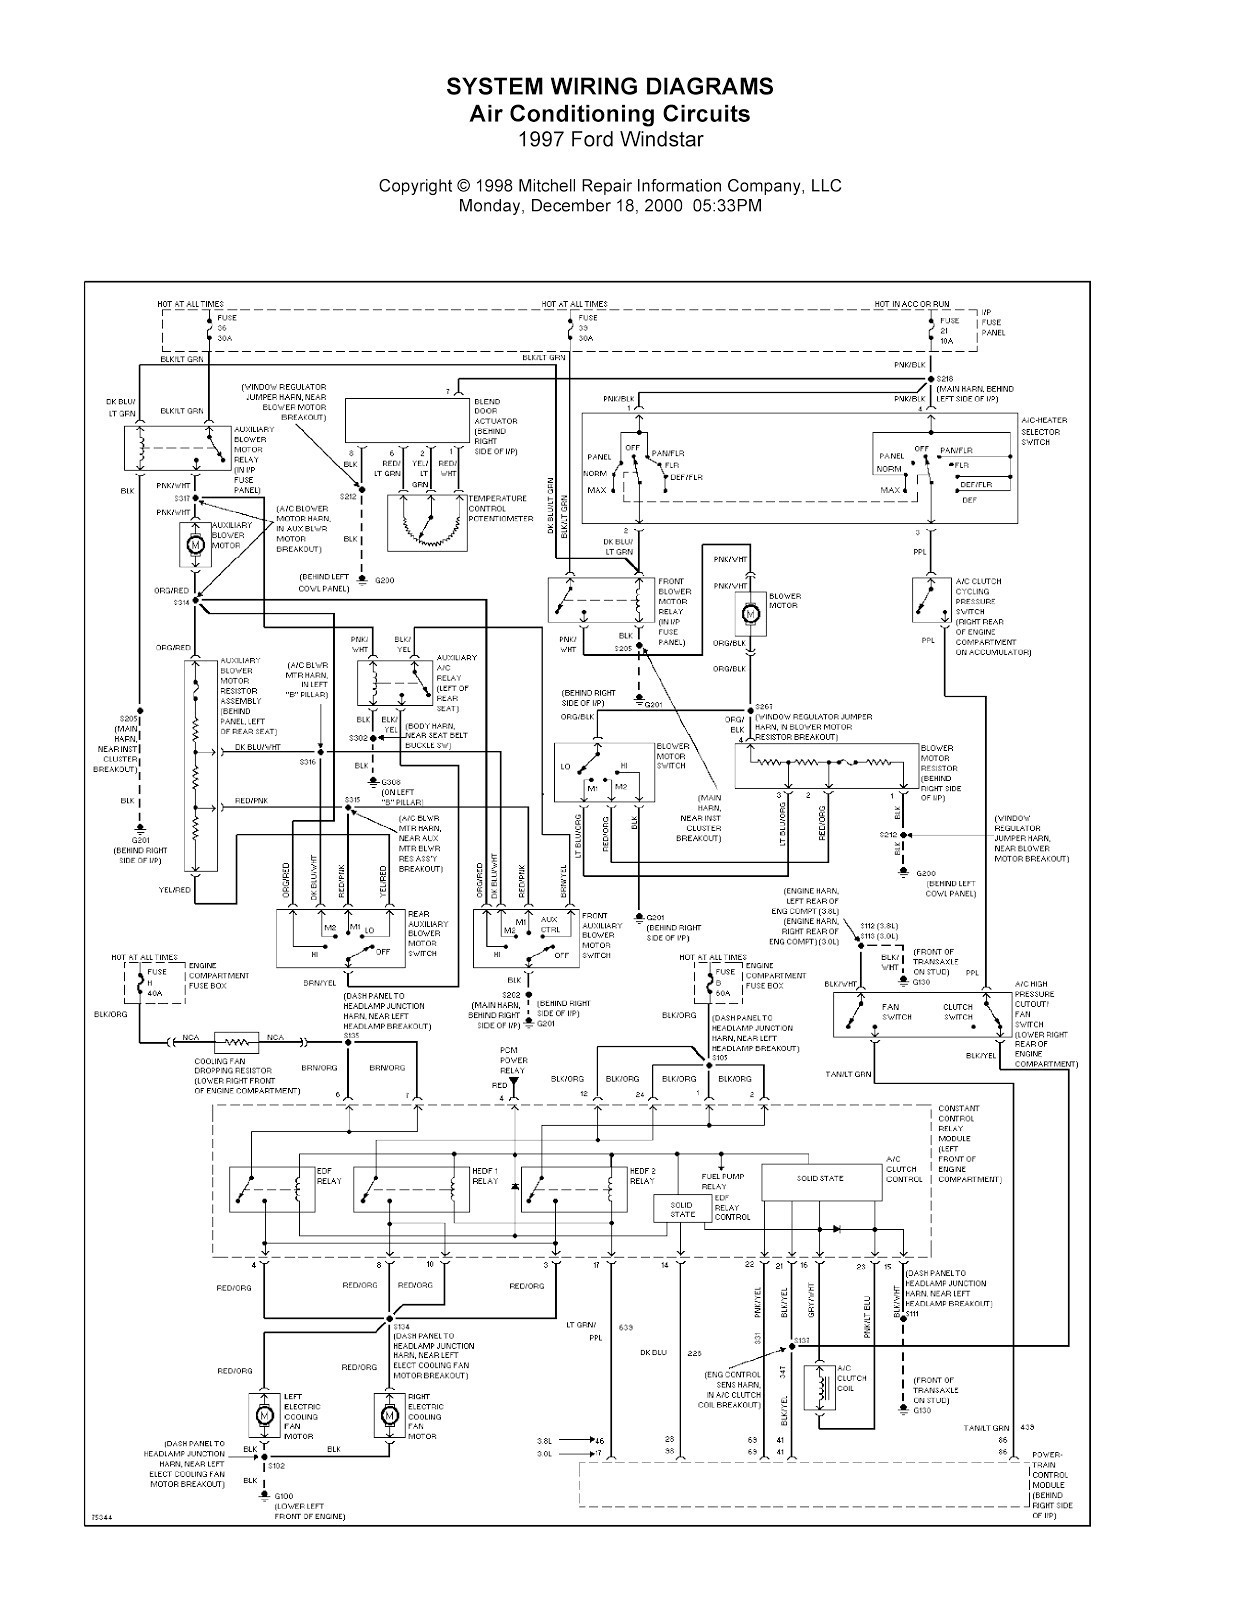 Wiring Diagram For Ford Windstar Transmission | Wiring Diagram - Ford Escape Trailer Wiring Diagram